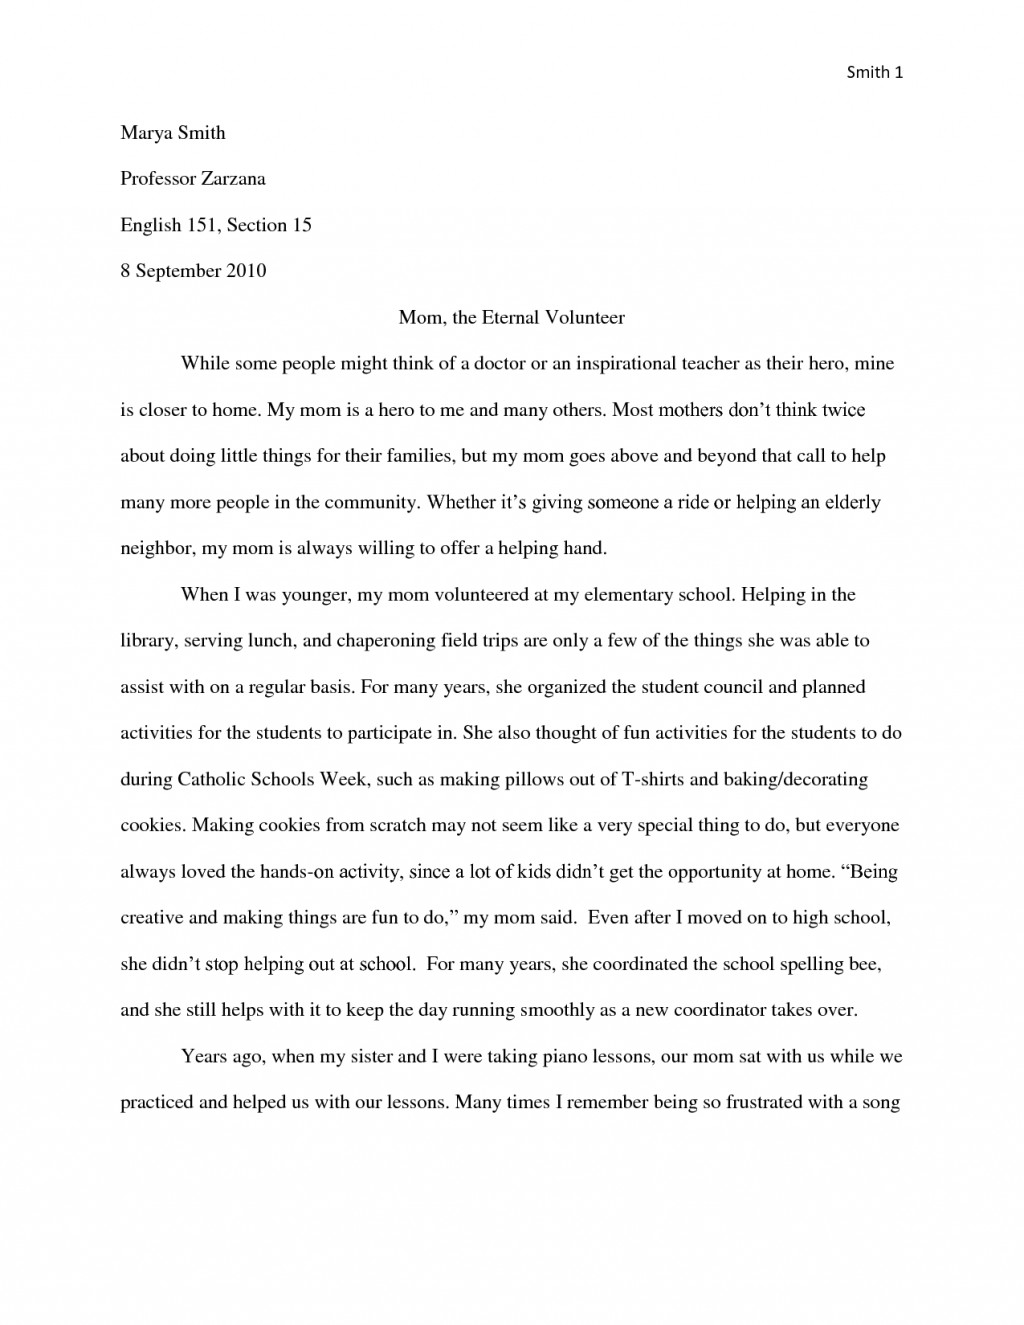 013 Essay Example Mom Hero Essays Template Heroism About My Moment Of Pain And Regret Short Descriptive Expository Role Model Examples An Narrative Tribute Samples Narative Is Remarkable Mother Contest 2017 Large